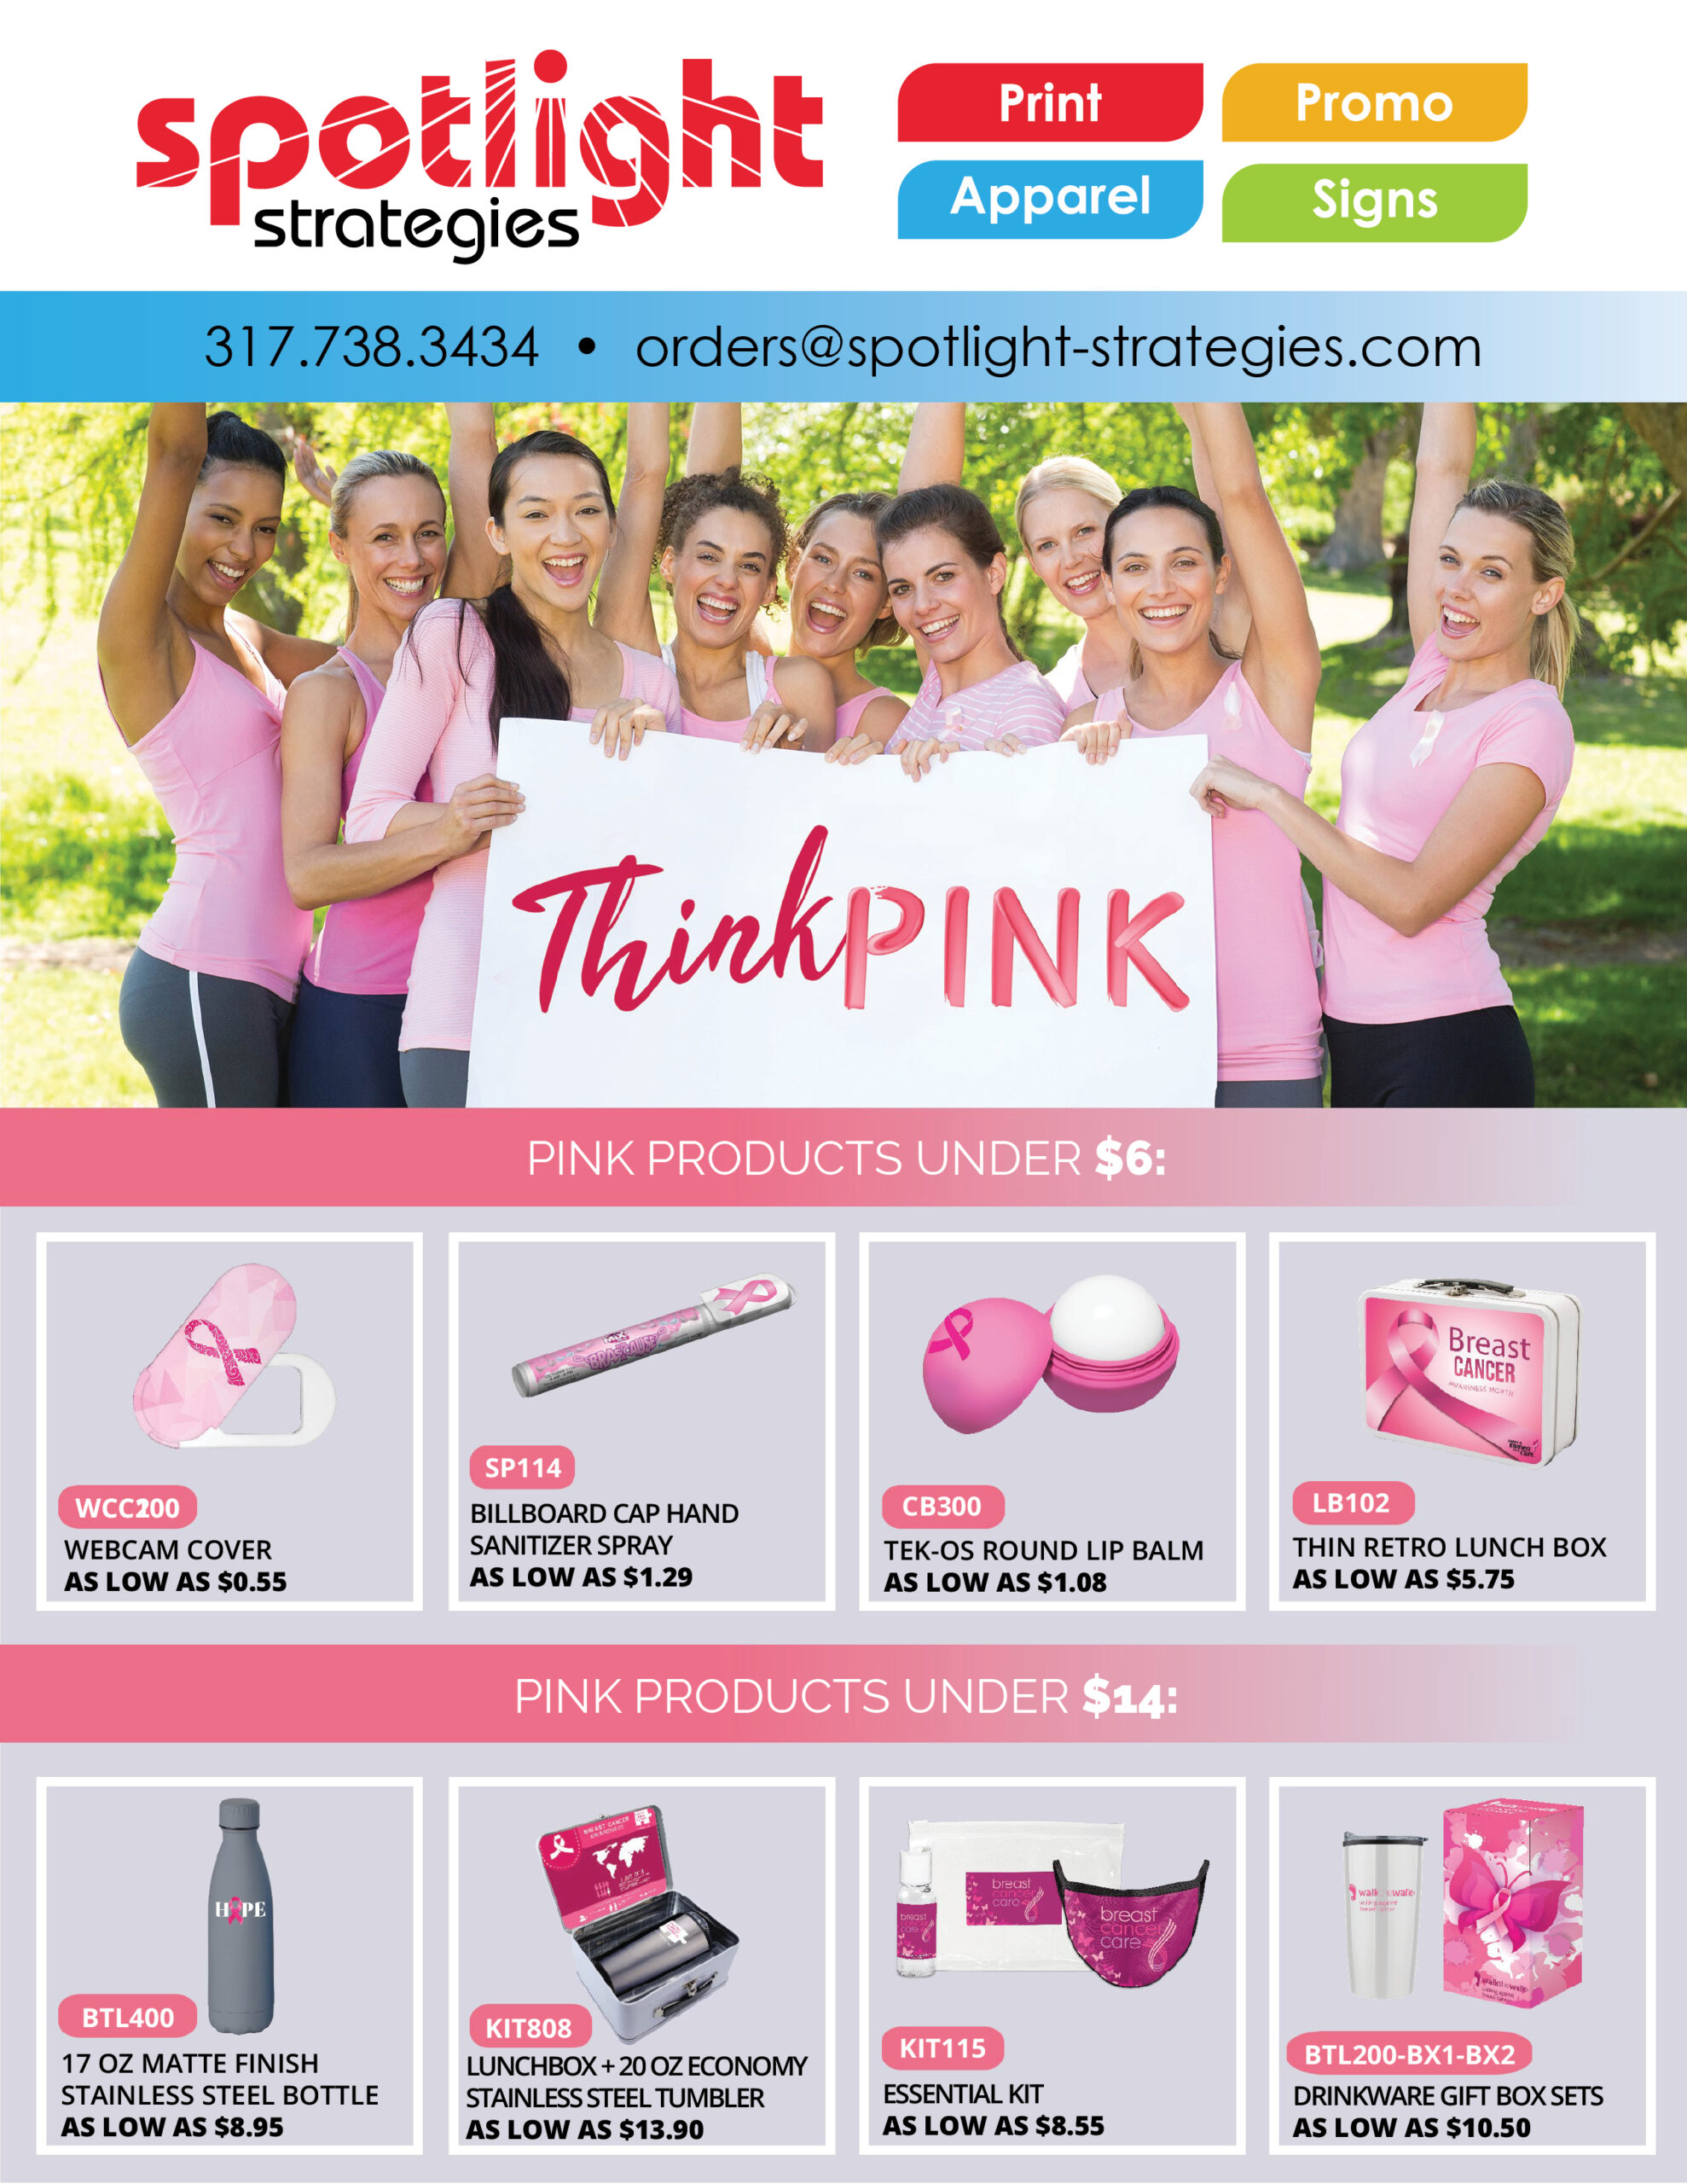 Support a PINK Cause!